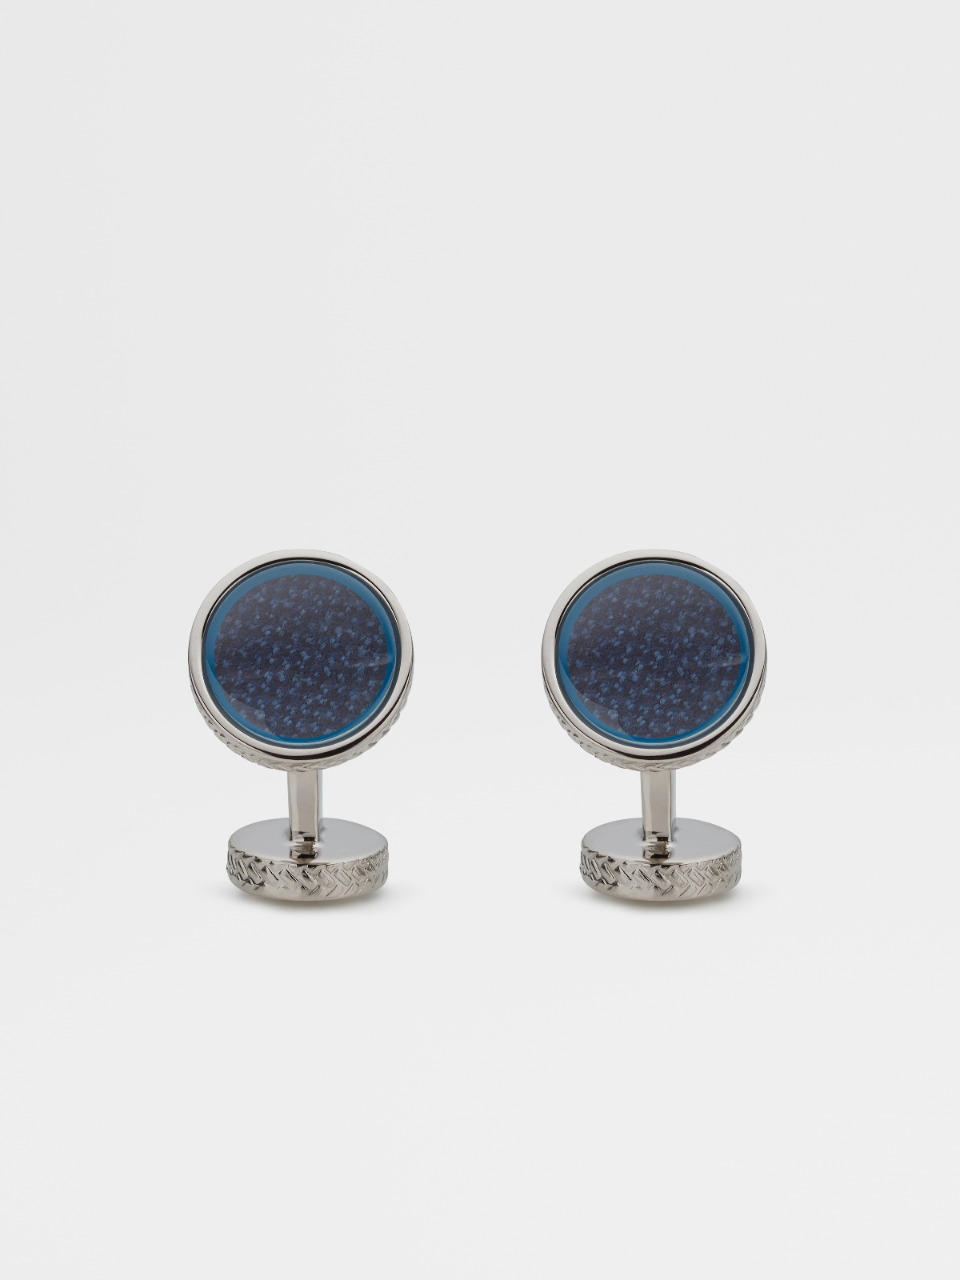 Trofeo Glass Cufflinks